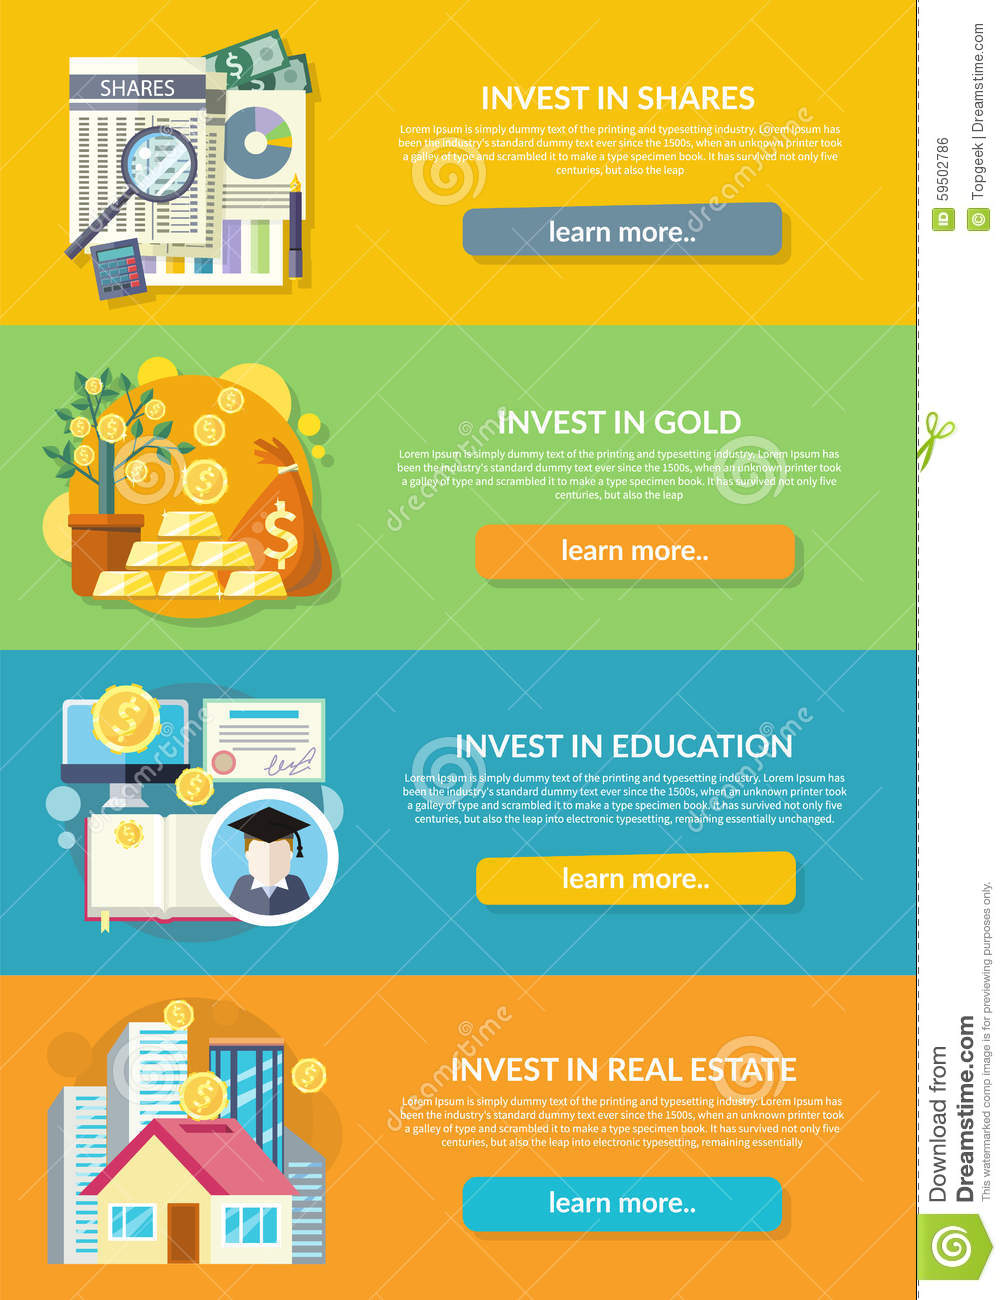 Basic investment banking concepts of education fos investment limited